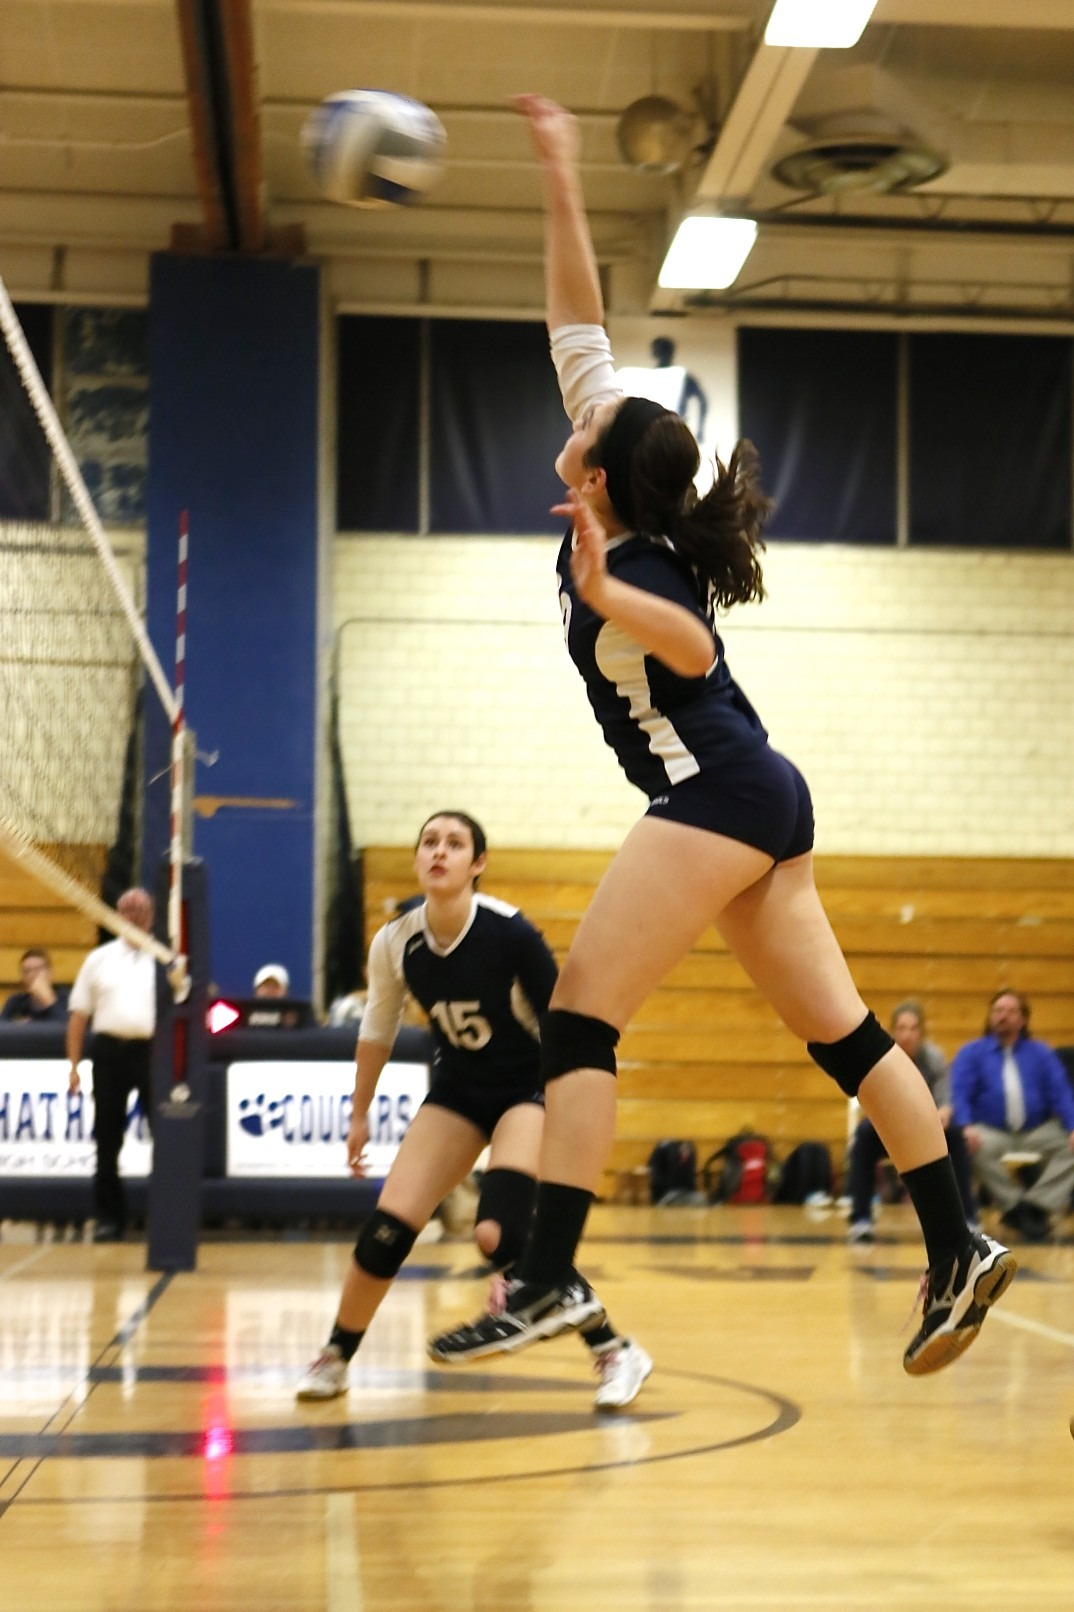 34c63e54bf9b291599f9_Chatham_Girls_Volleyball-LL_6608.jpg